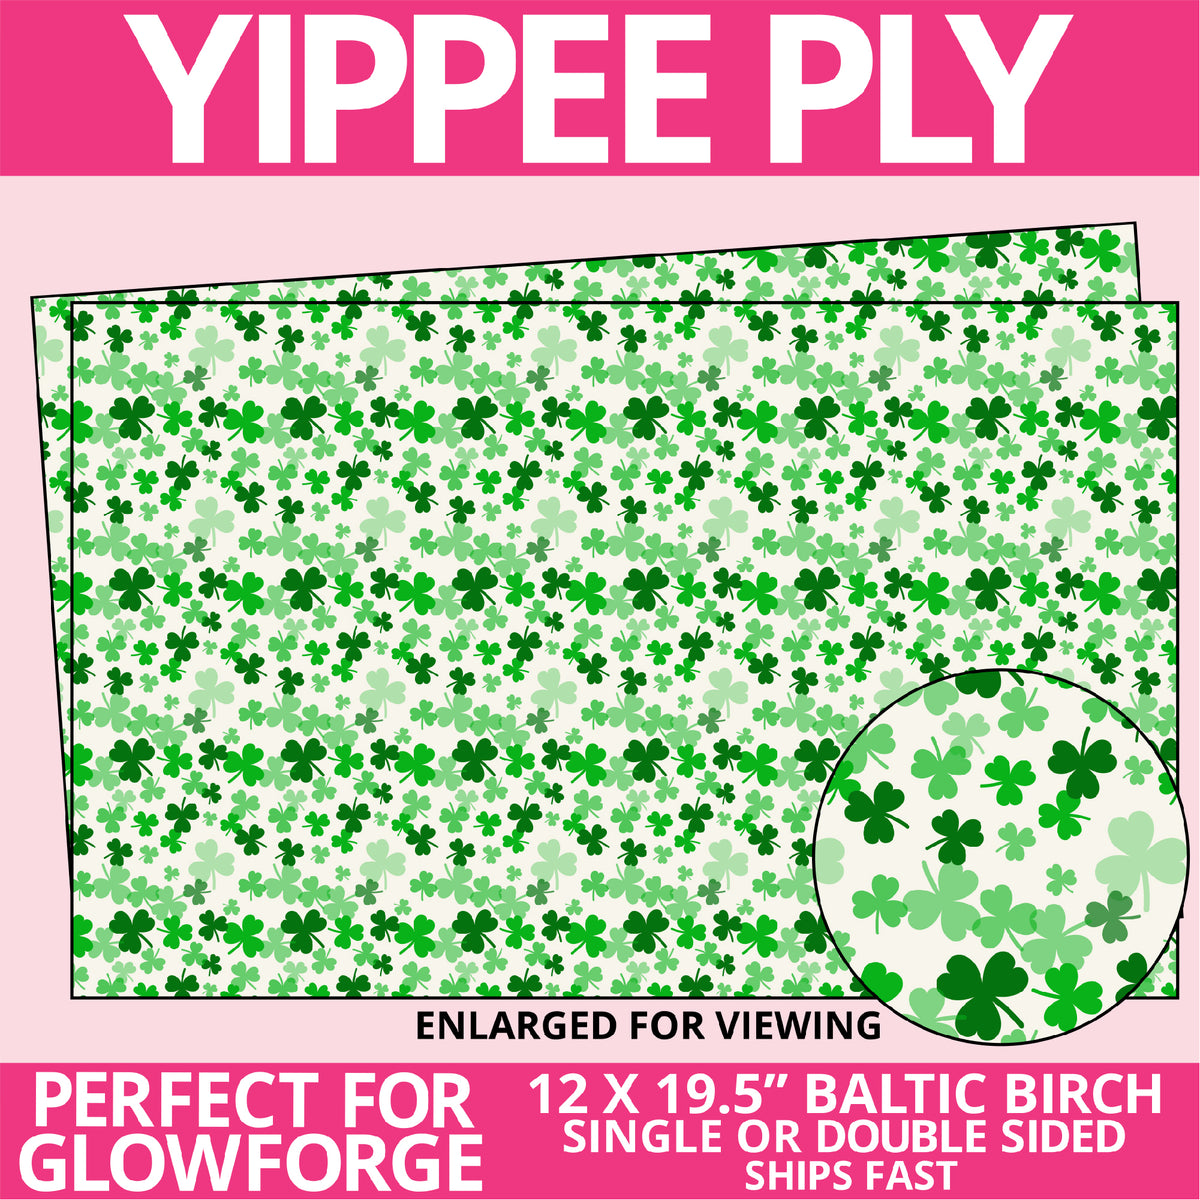 Yippee Ply Shamrocks Pattern on Birch Plywood 1023